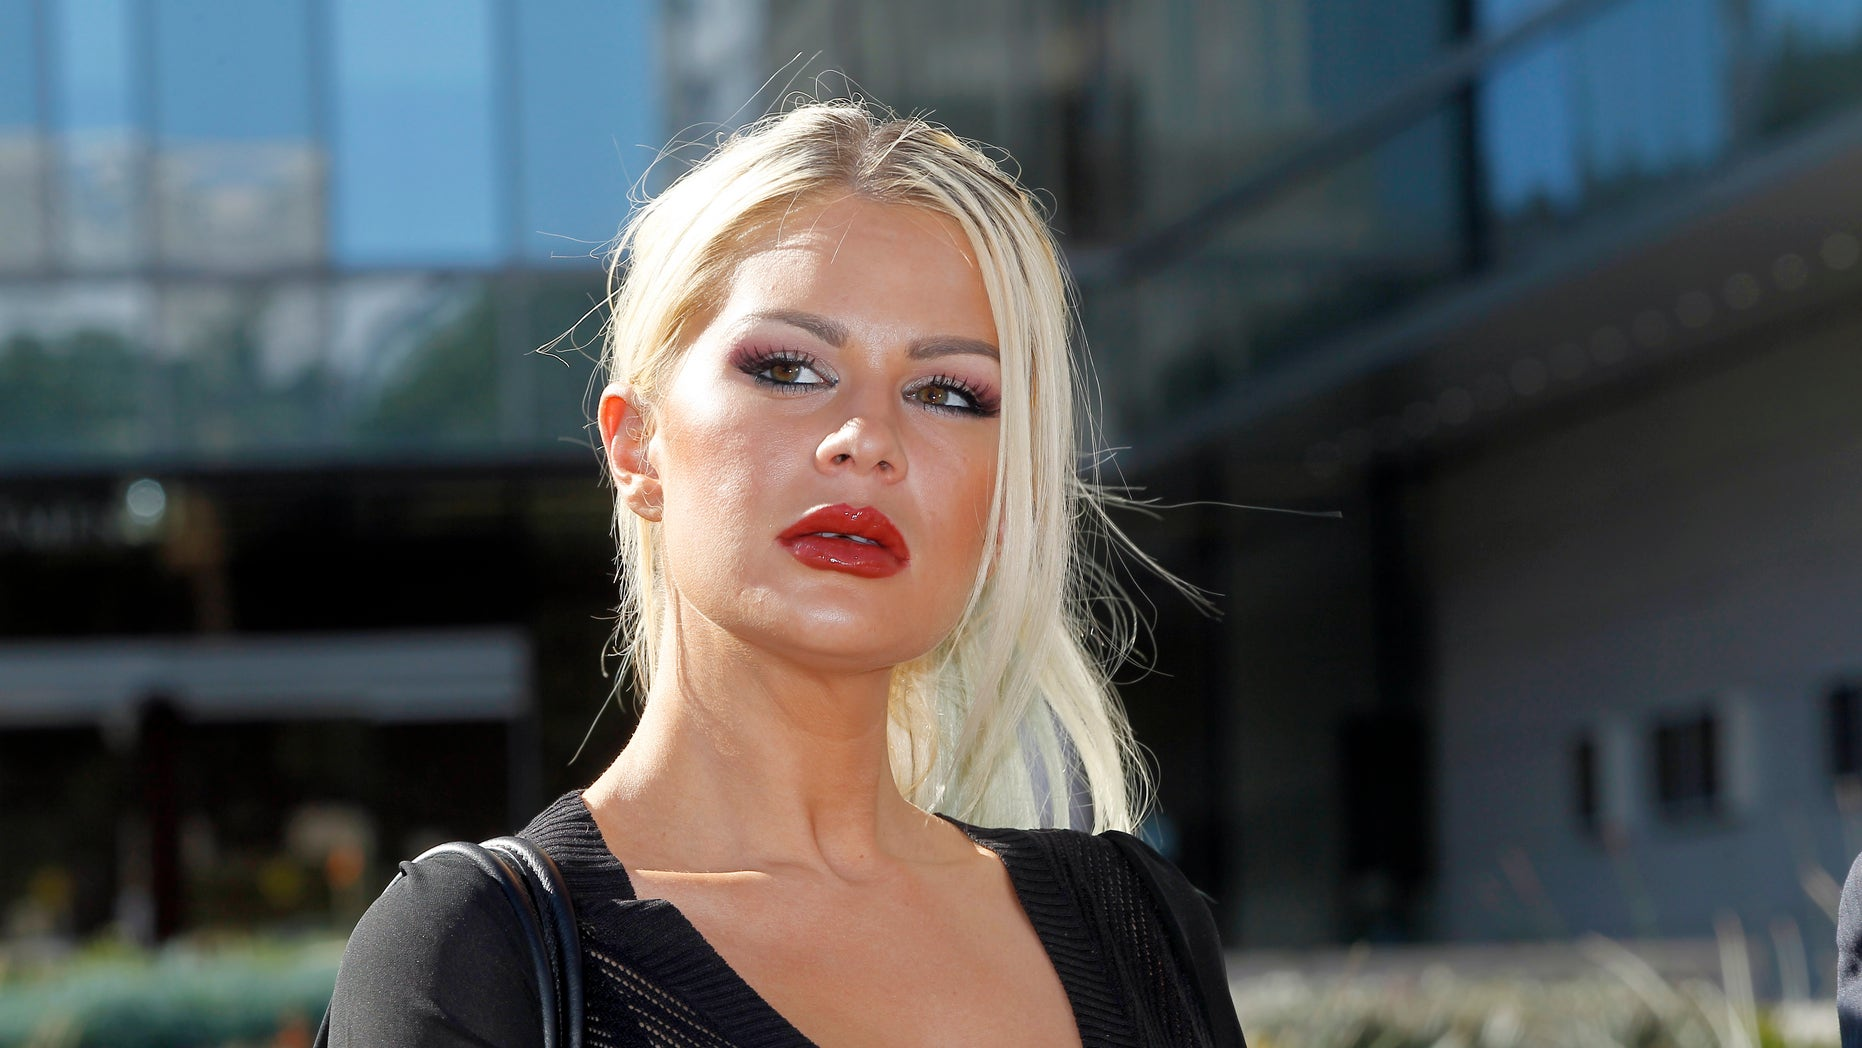 Jan. 14, 2015. Chloe Goins, a model who claims entertainer Bill Cosby drugged and sexually abused her at the Playboy Mansion in 2008, appears before reporters outside Los Angeles police headquarters after meeting police investigators in Los Angeles.